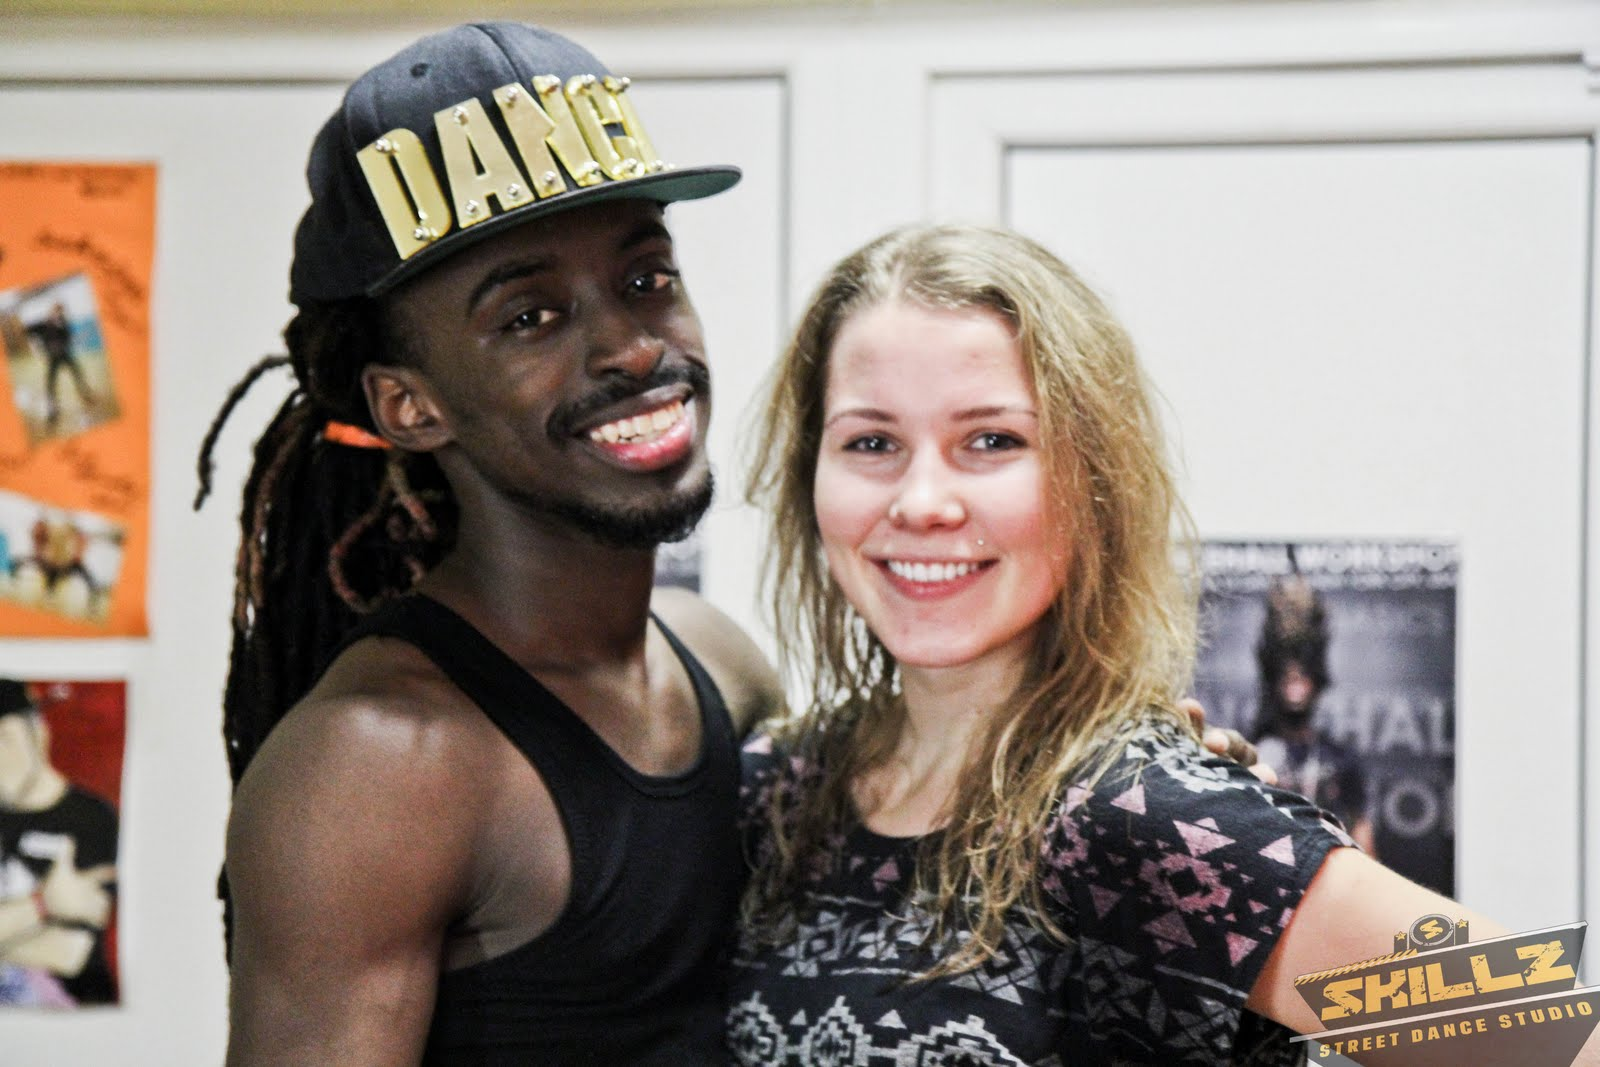 Dancehall workshop with Black Di Danca (USA, New Y - IMG_6782.jpg